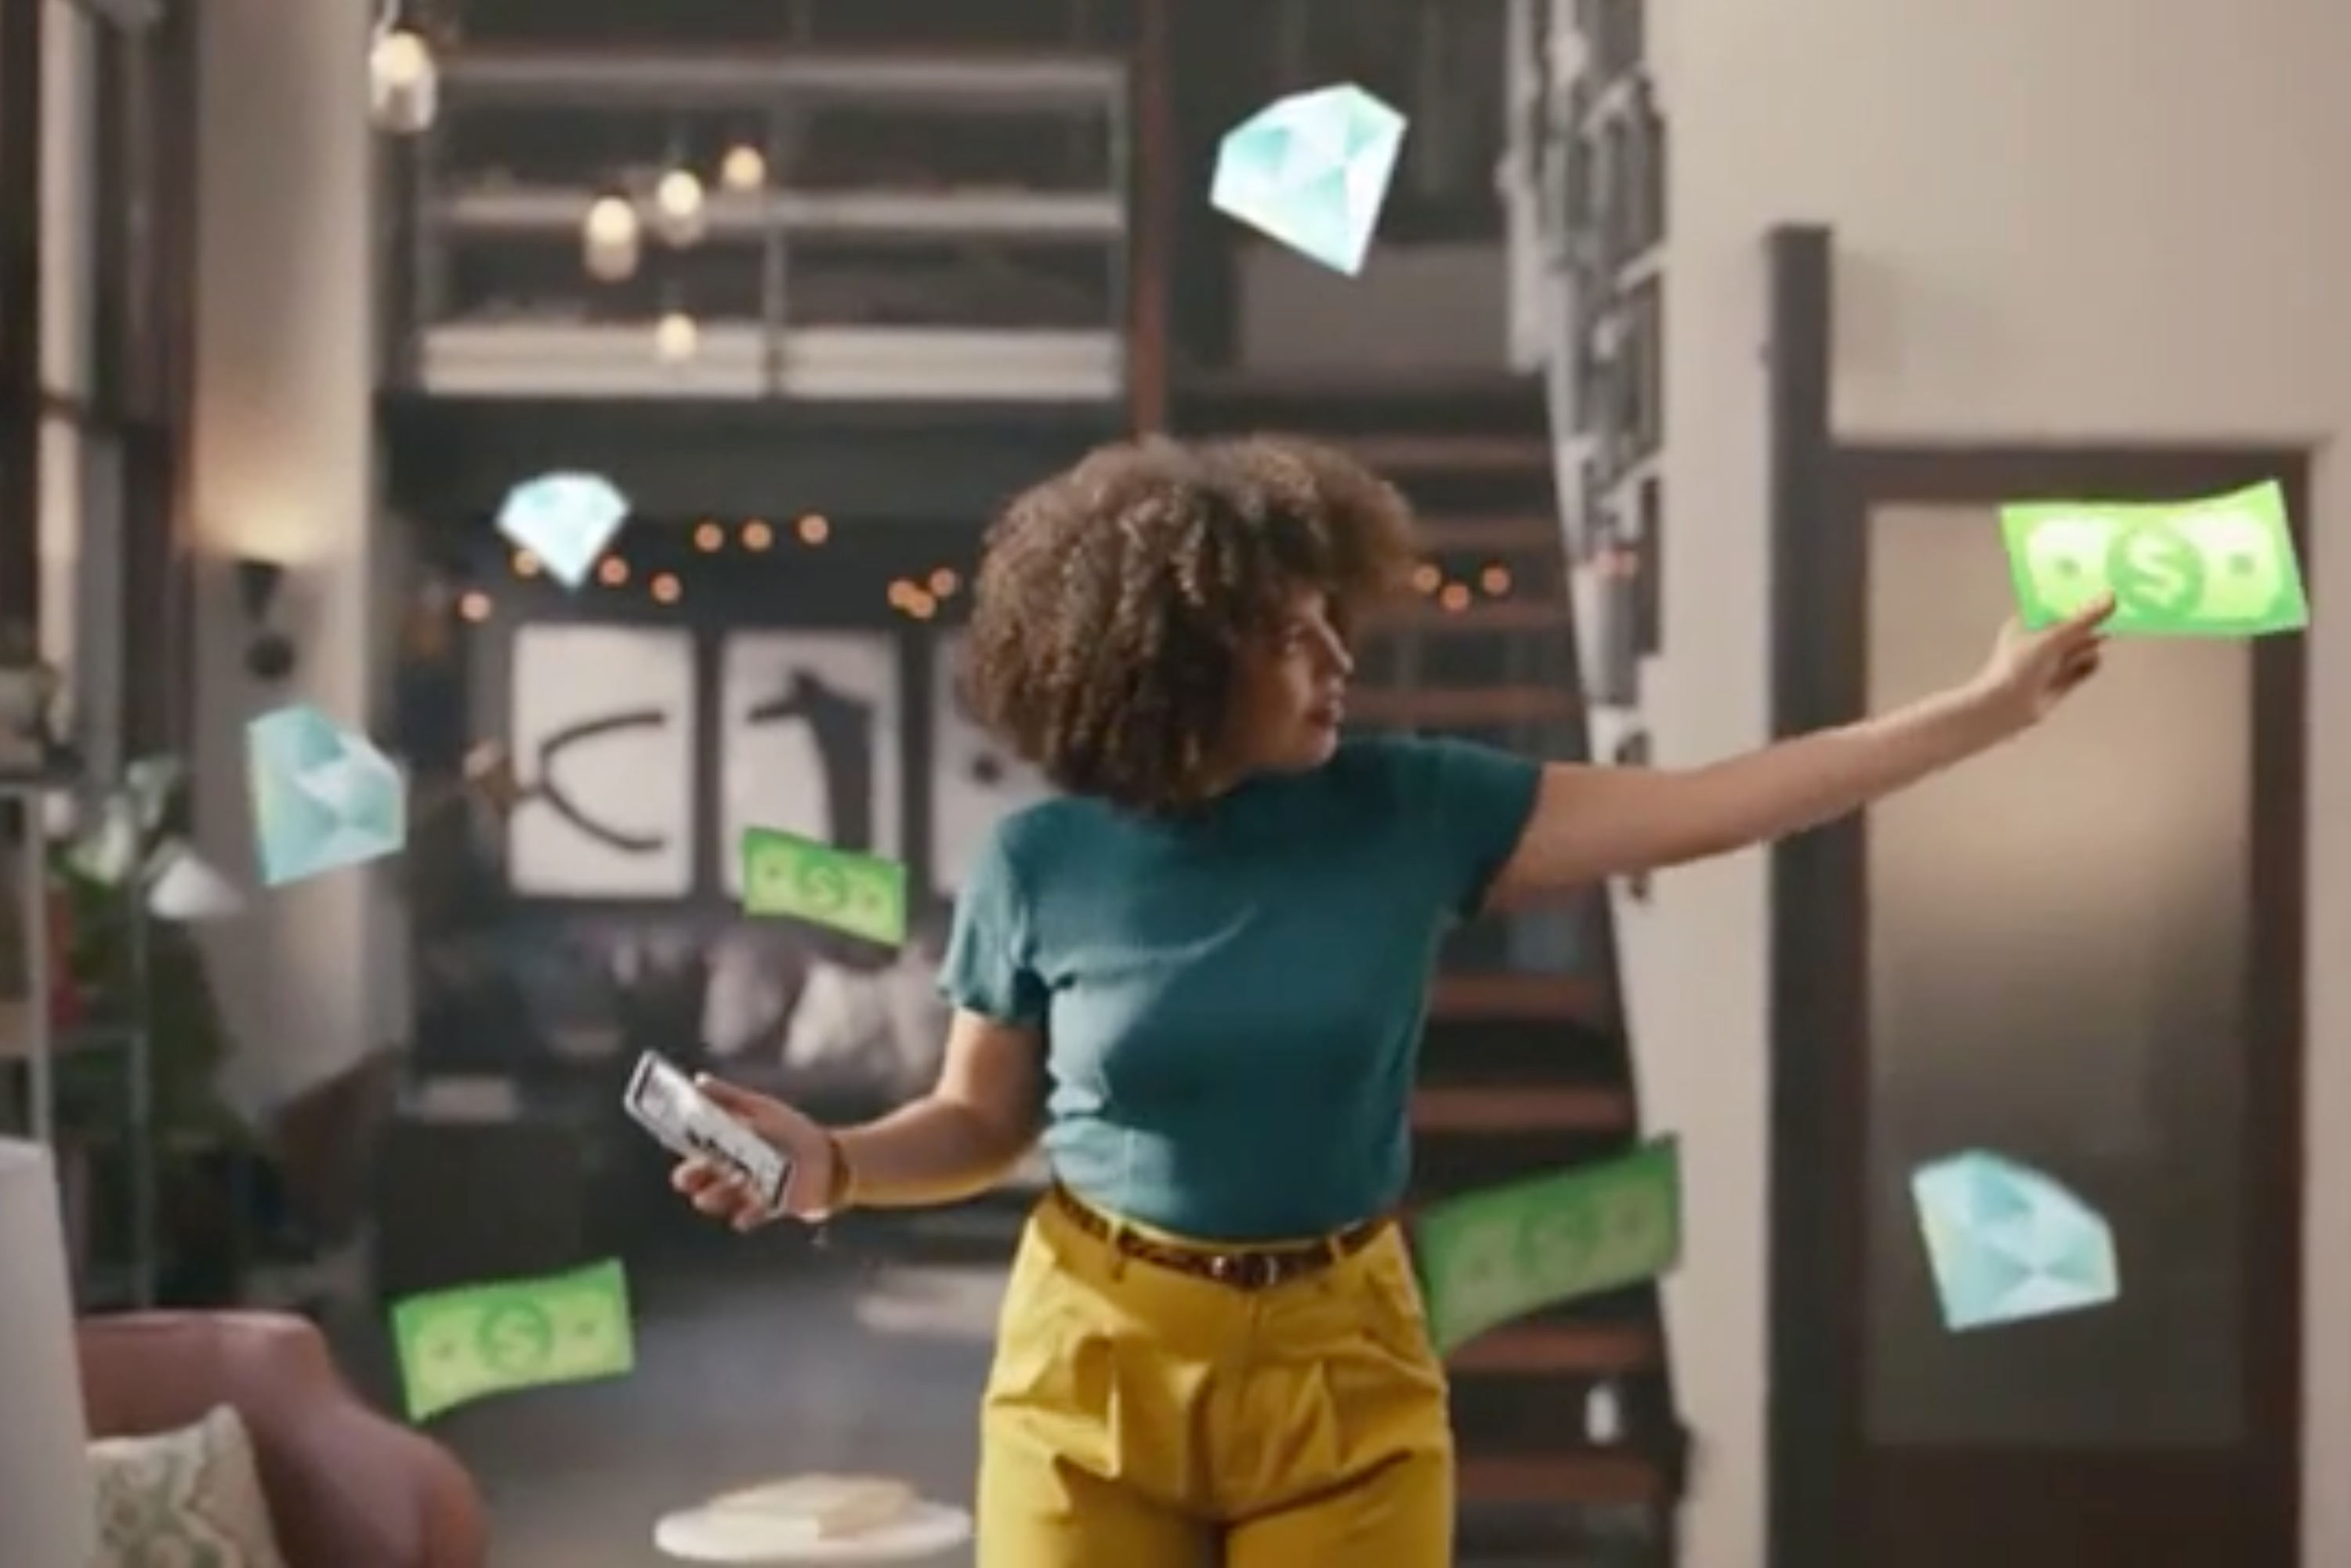 Watch the newest commercials on TV from Grubhub, Ram Trucks, NerdWallet and more